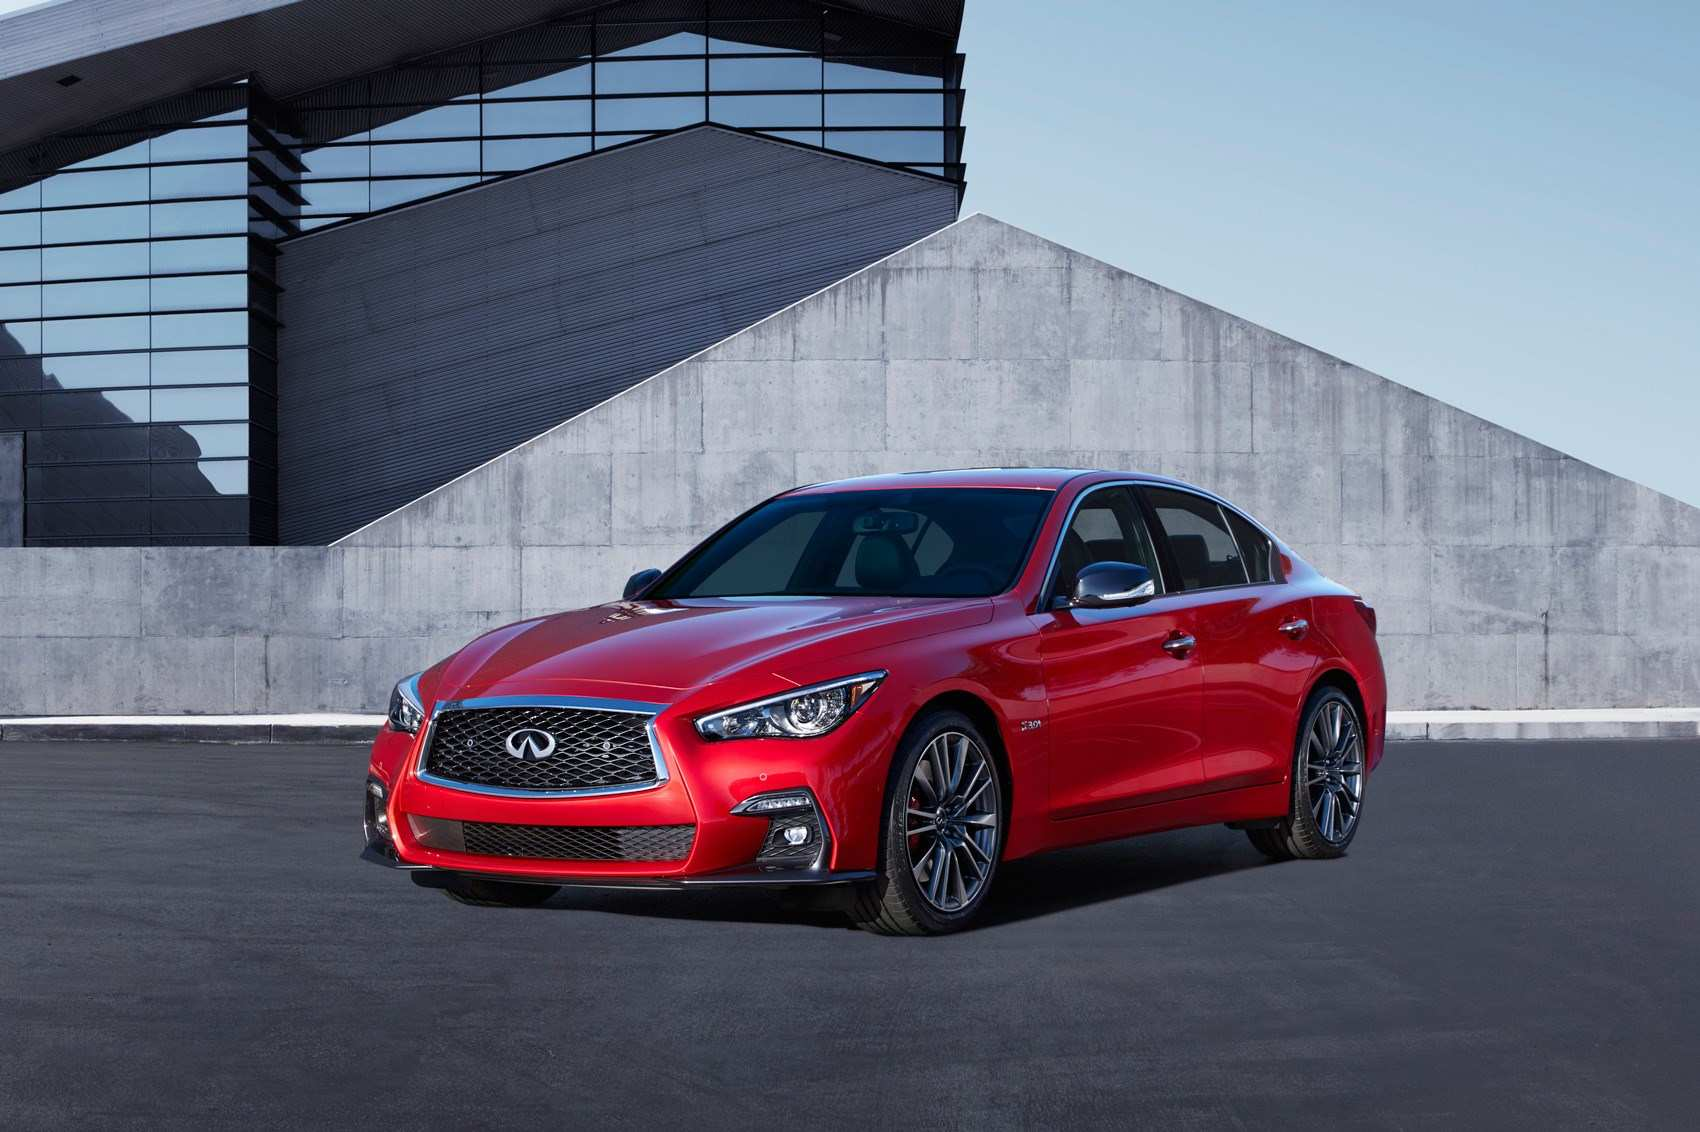 58 New Infiniti Cars For 2020 New Review